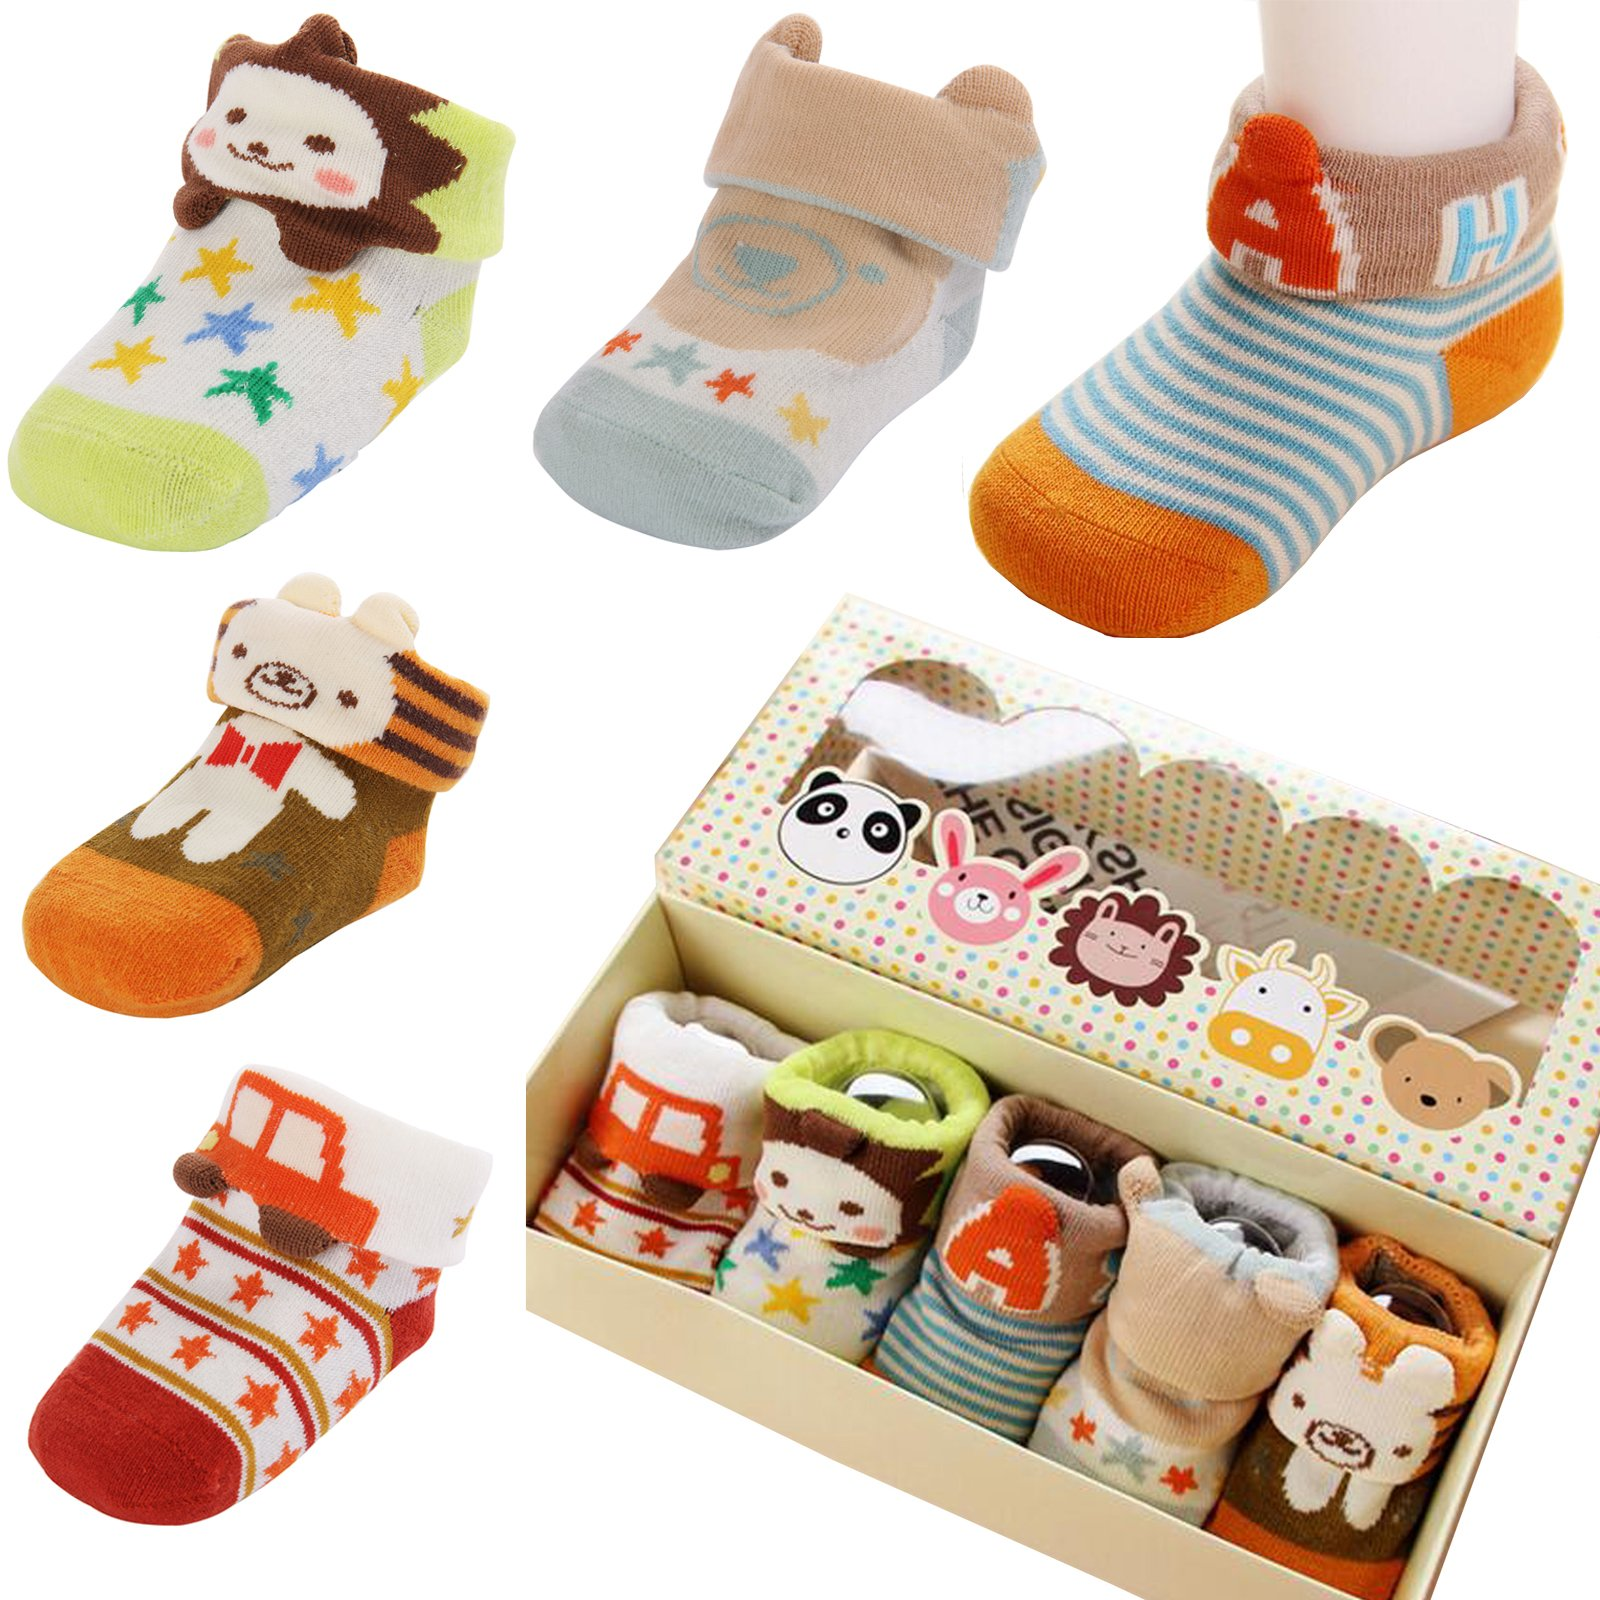 Fly-love® 5pairs Animal Non-Skid Slip Toddler Socks Cotton Unisex Baby Crew Sock 0-18 months With Box by love (Image #5)